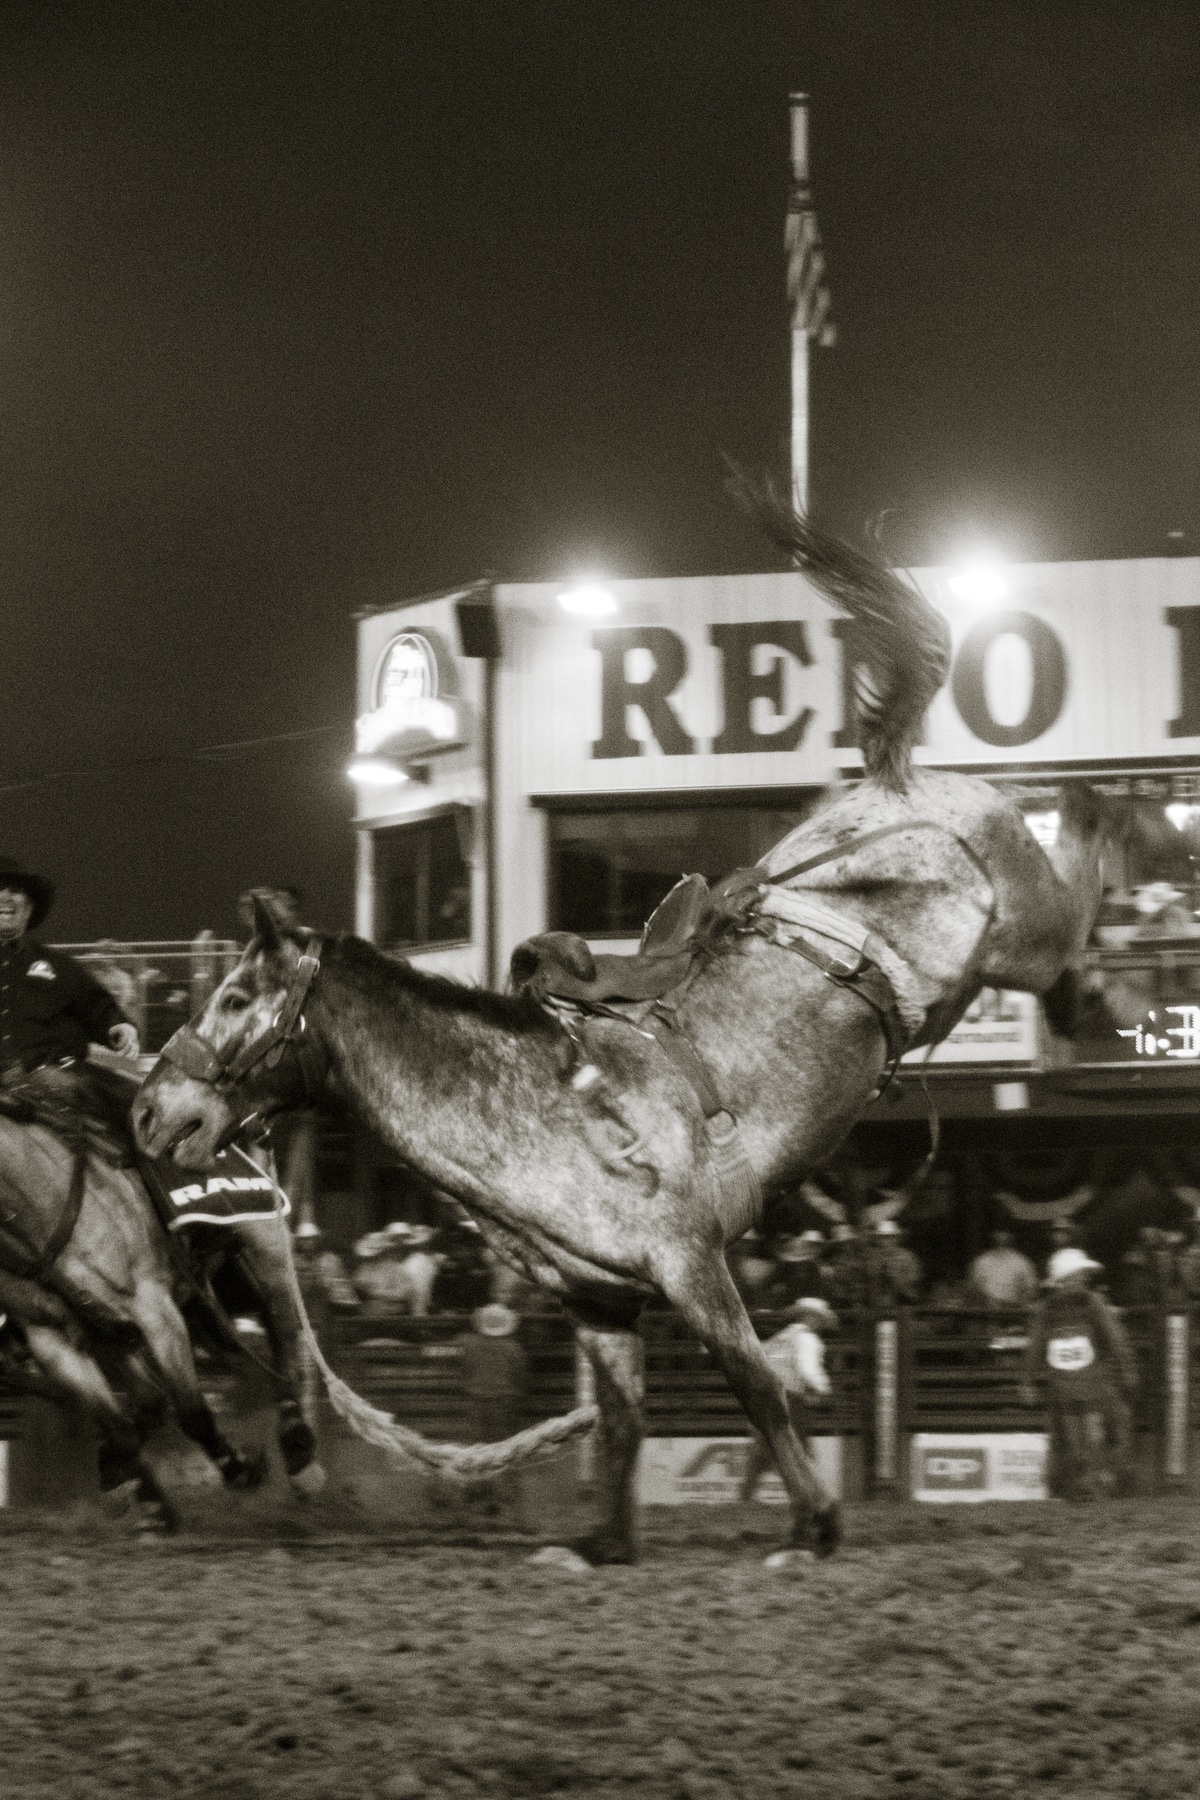 100th Anniversary of the Reno Rodeo